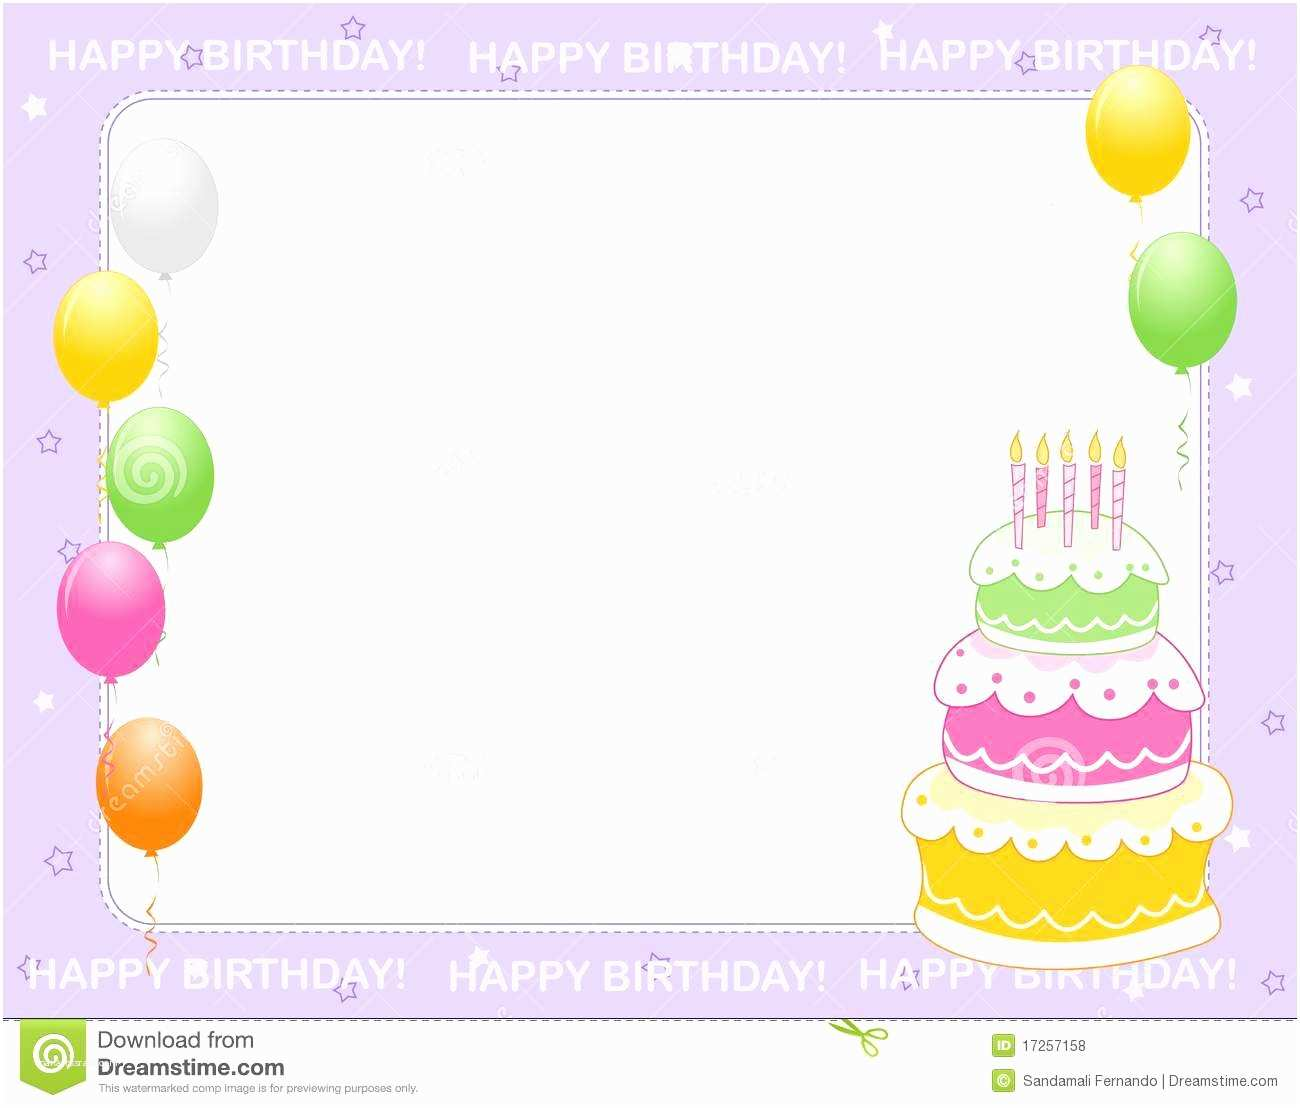 Free Birthday Invitations Birthday Invitation Cards